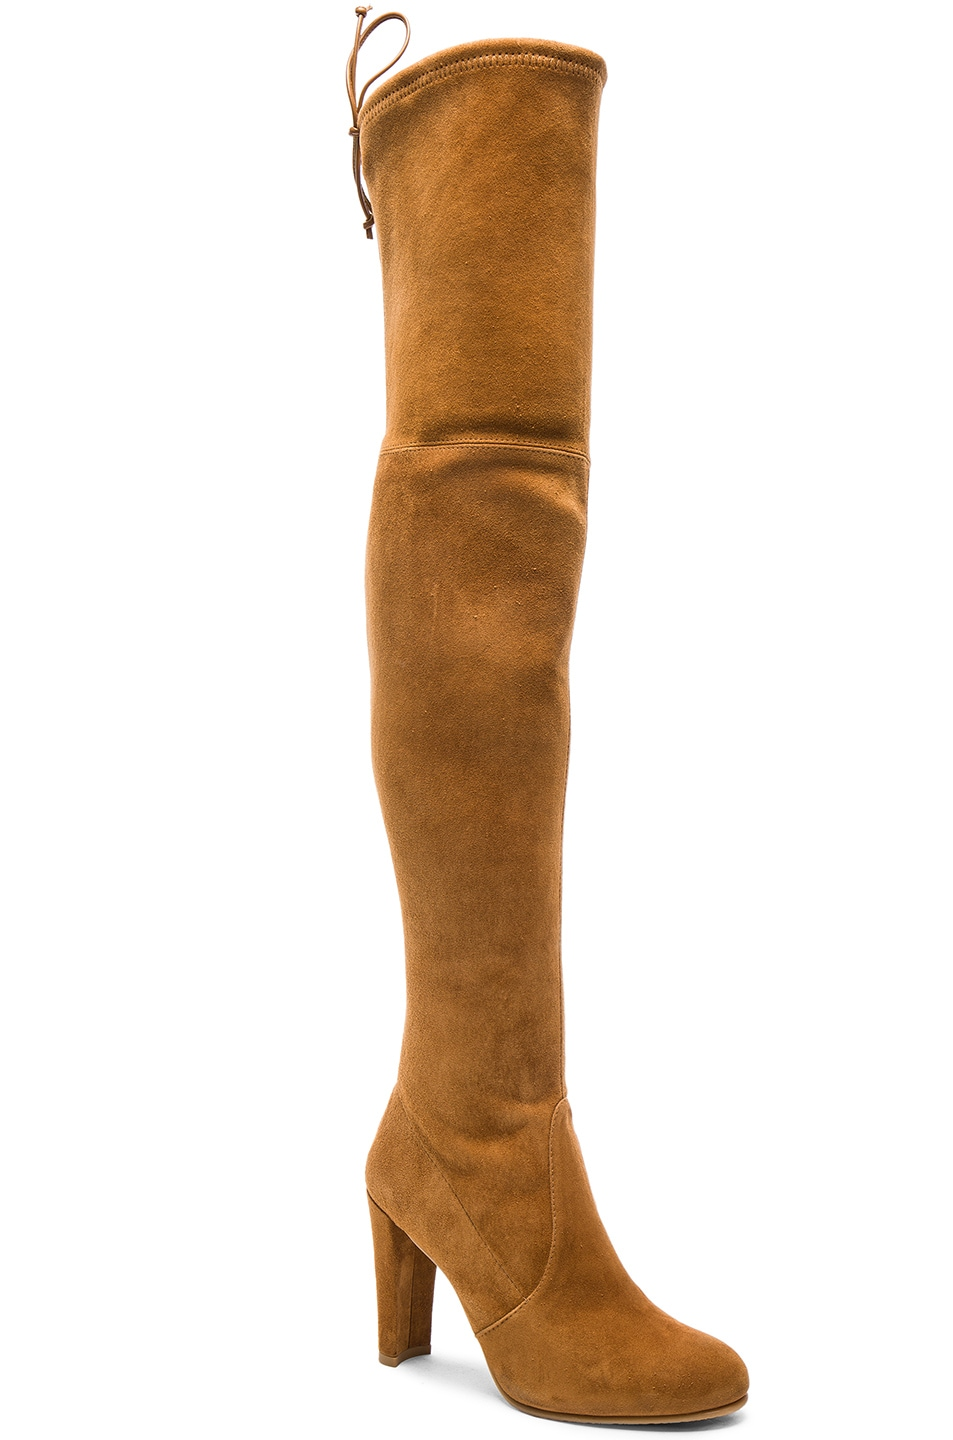 Image 2 of Stuart Weitzman Suede Highland Boots in Camel